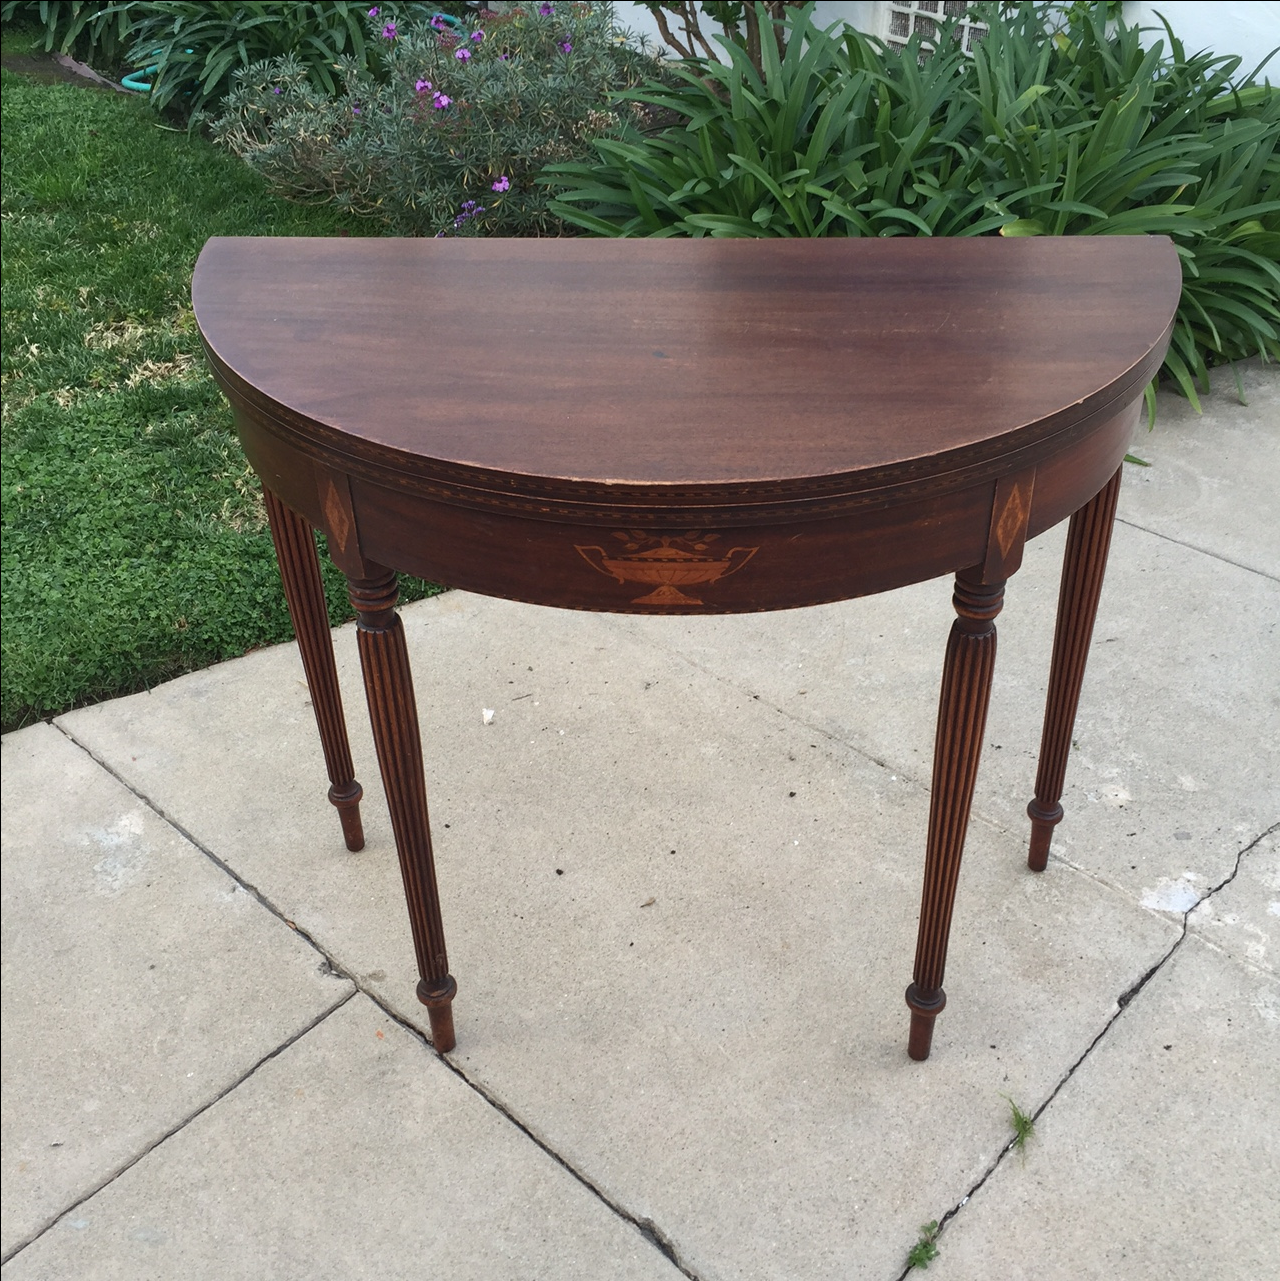 Superieur Antique Half Moon Side Table That Converts Into A Full Round Table,  Featuring Beautiful Detail